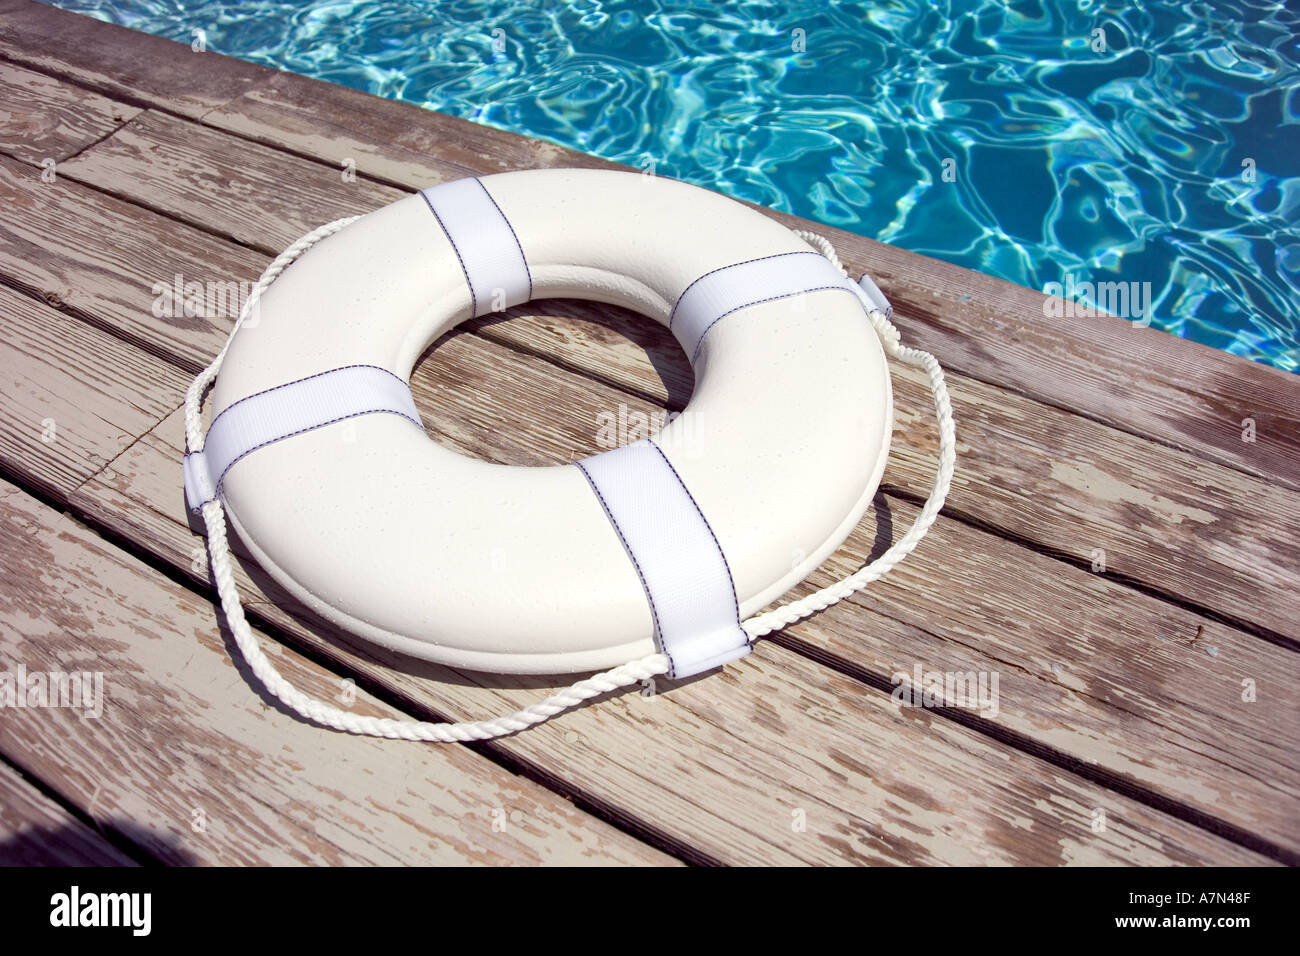 Life preserver on pool deck life jacket - Stock Image